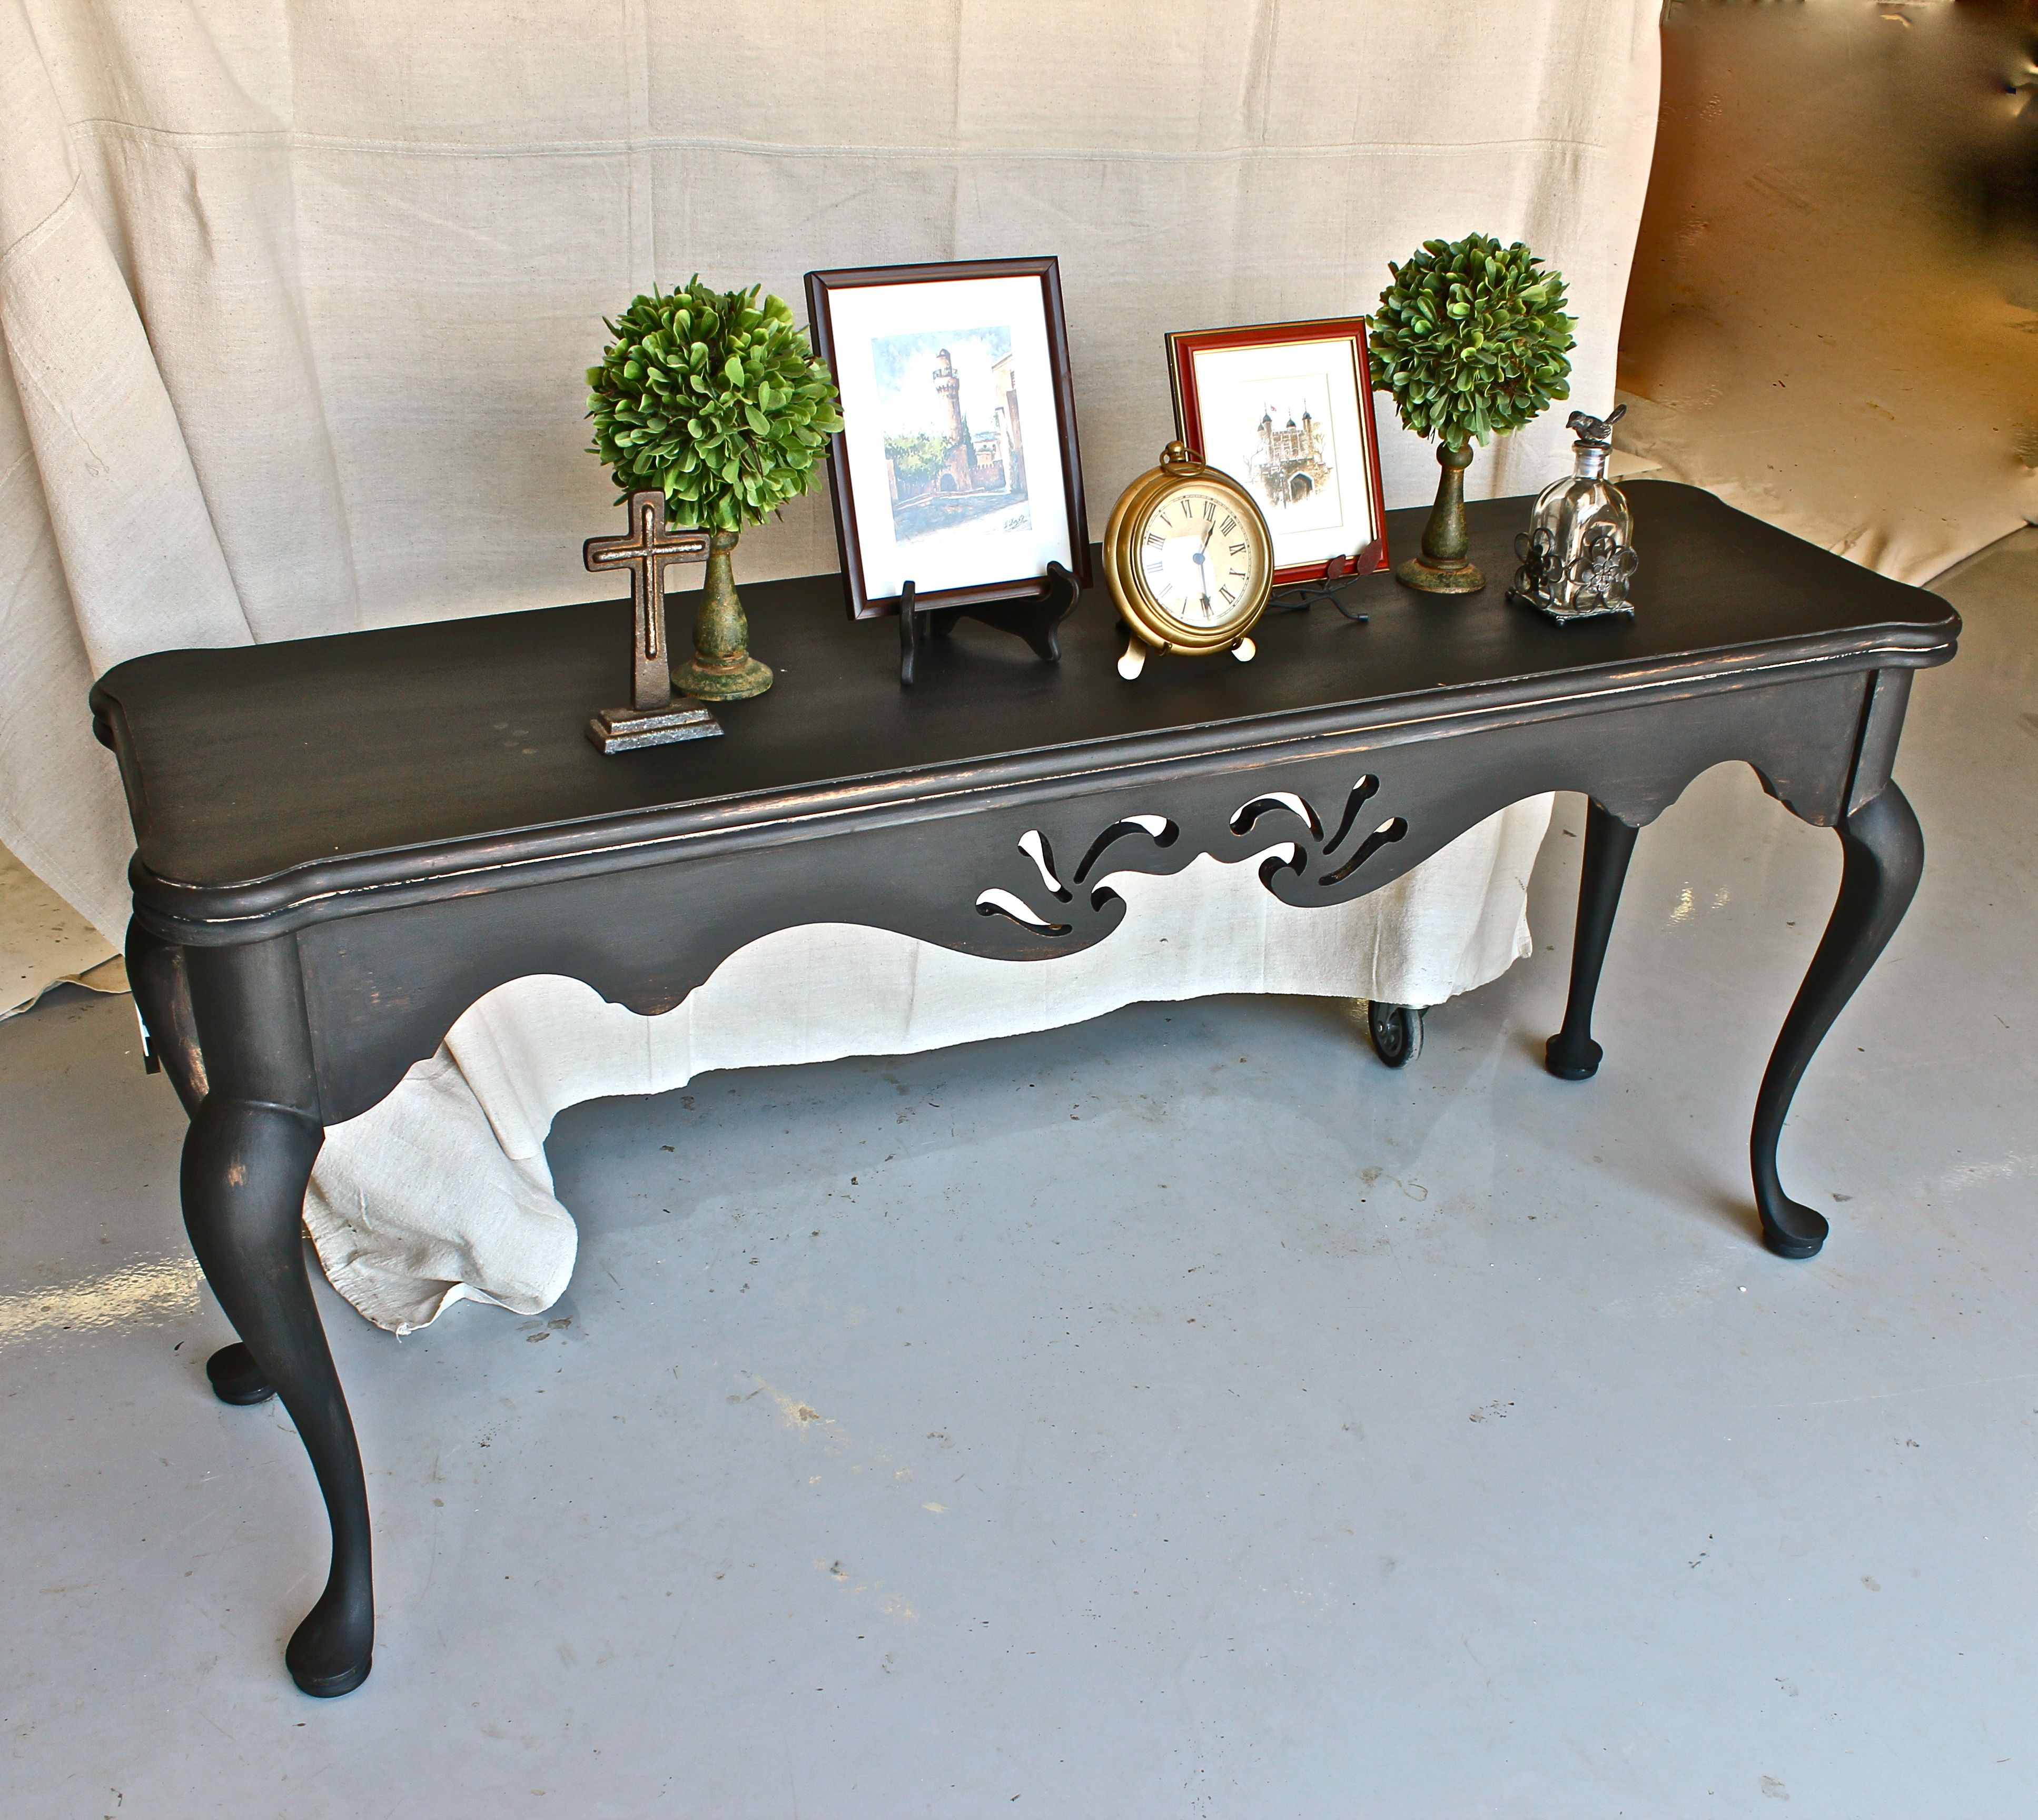 Sofa Table Painted With Graphite Chalk Paint Distressed And Then Sealed With Clear And Black Wax Done By Yeste Shabby Furniture Painted Table Chalk Furniture